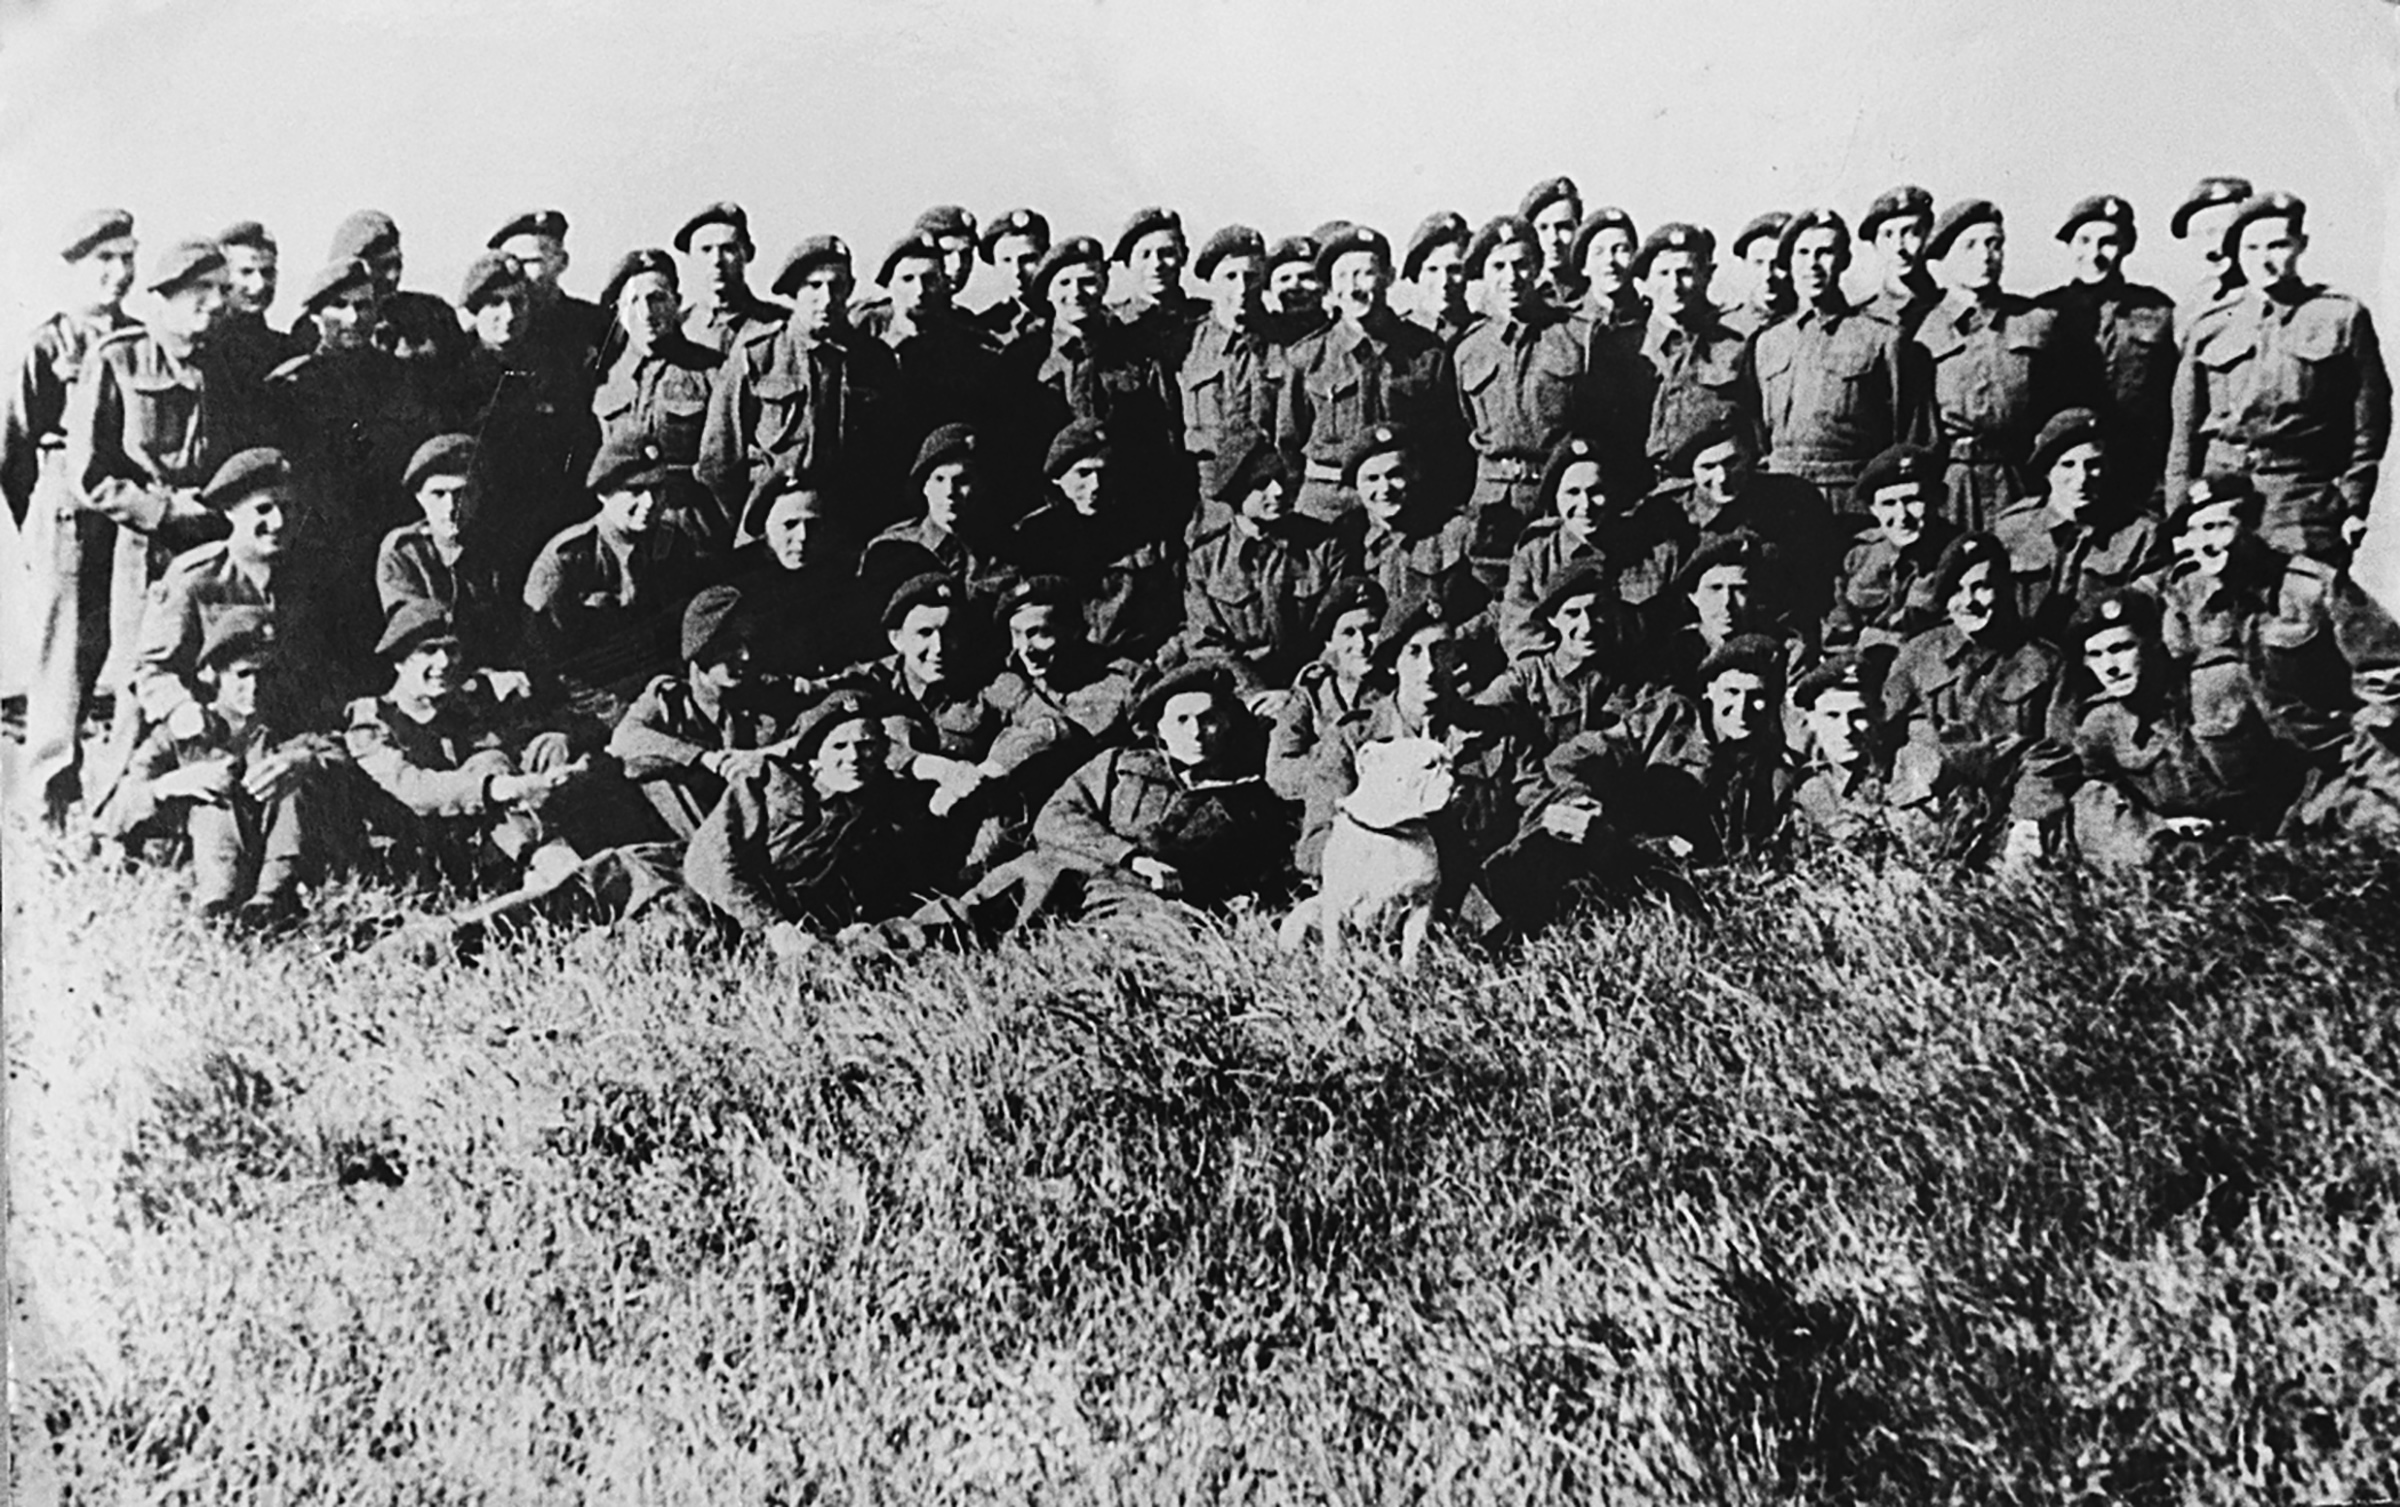 X Troop at Aberdovey, 1943. Peter Masters is in the back row, second from the left; Colin Anson is in the second row from the back, twelfth from the left; Manfred Gans is in the third row from the back, third from the right; and Bryan Hilton- Jones is in the front row, just to the left of Bully.